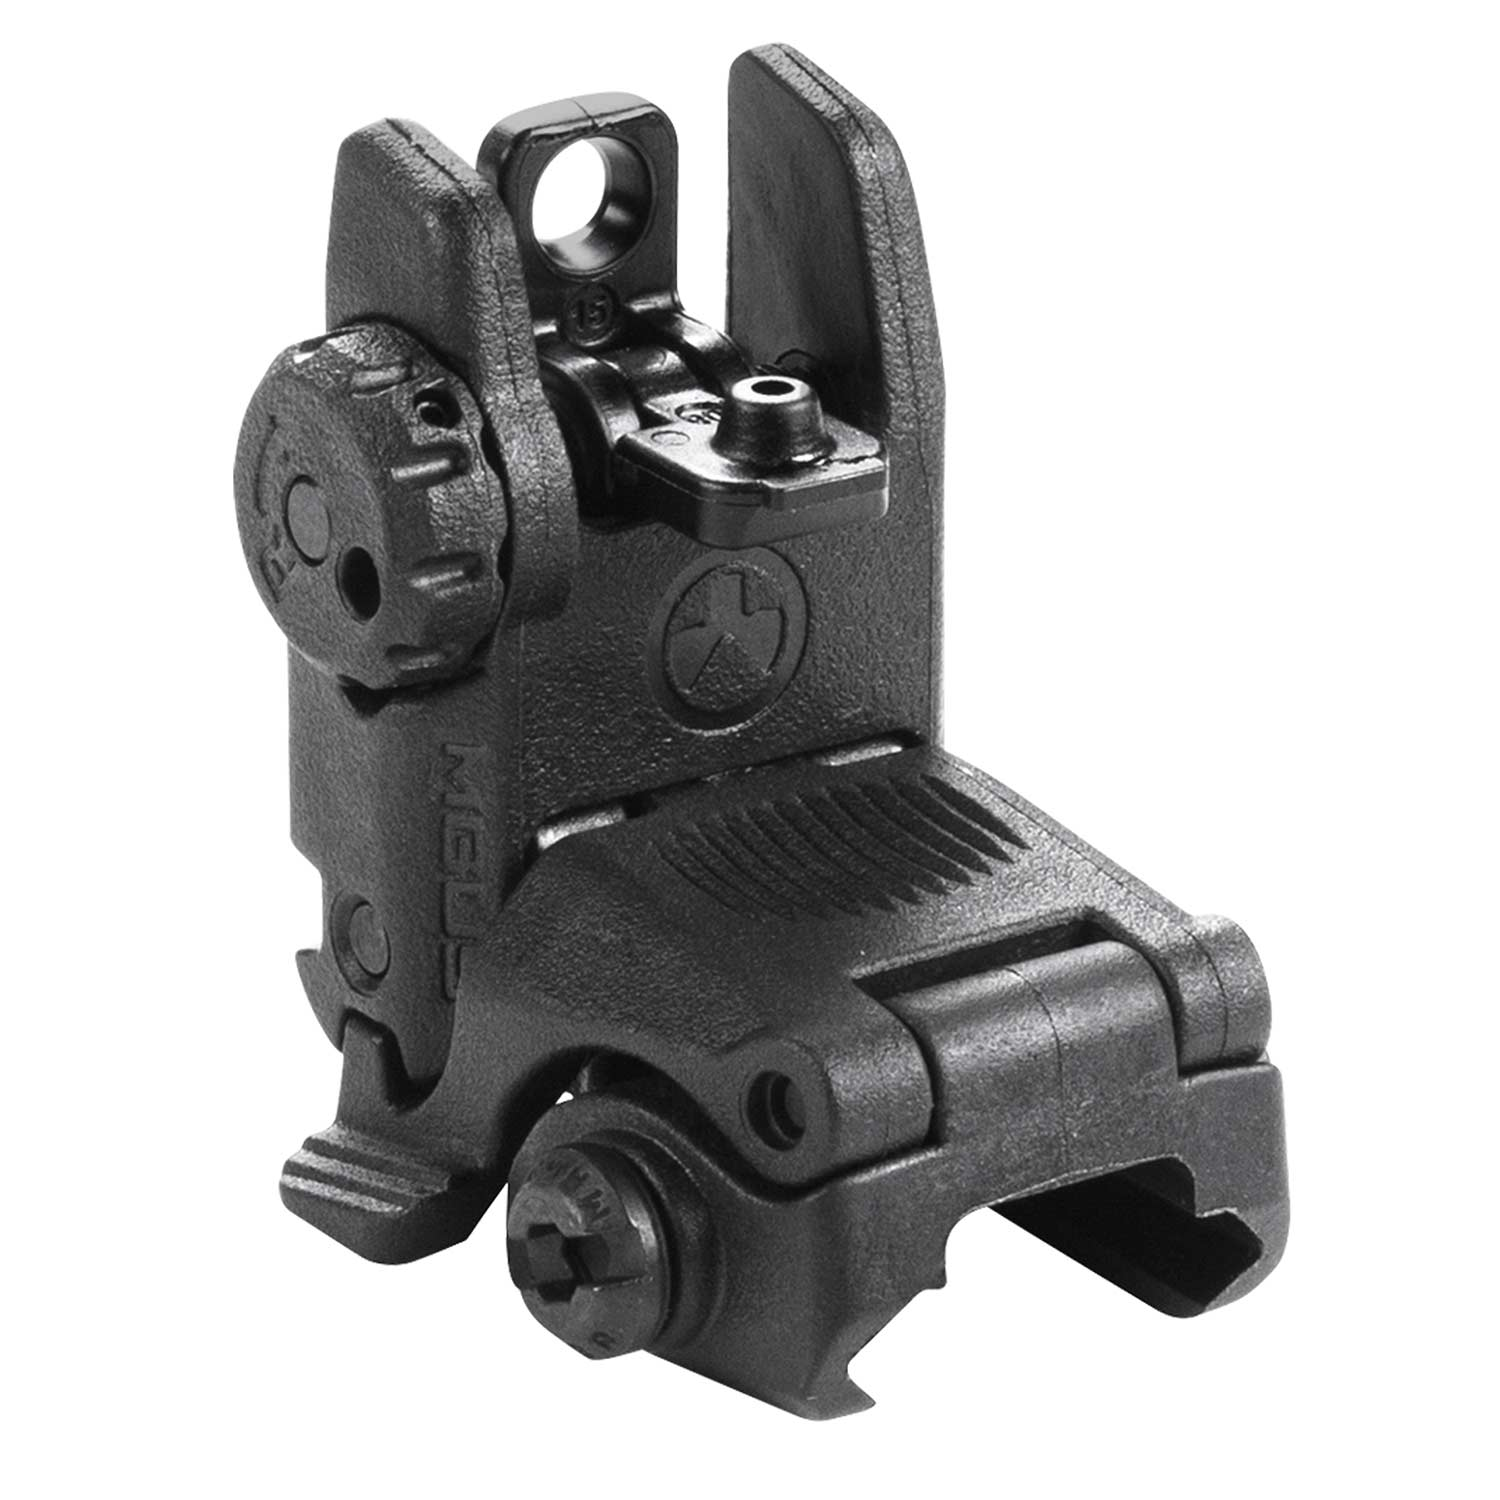 Magpul Back-up Sights (MBUS) Rear Sight